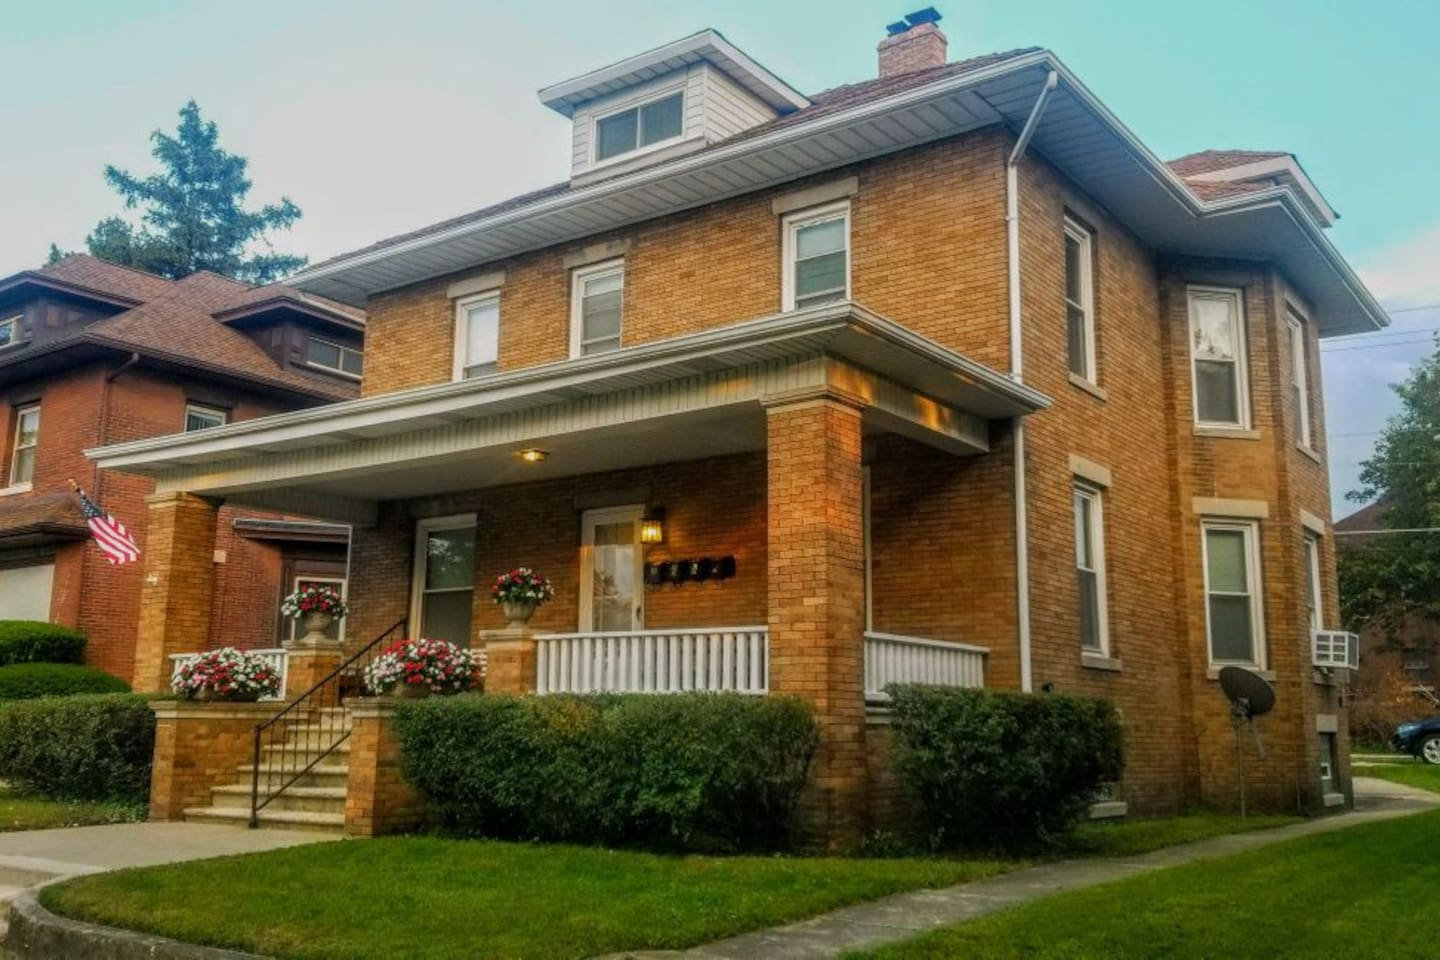 Turn of the century charming historic home close to everthing Michigan City has to offer.